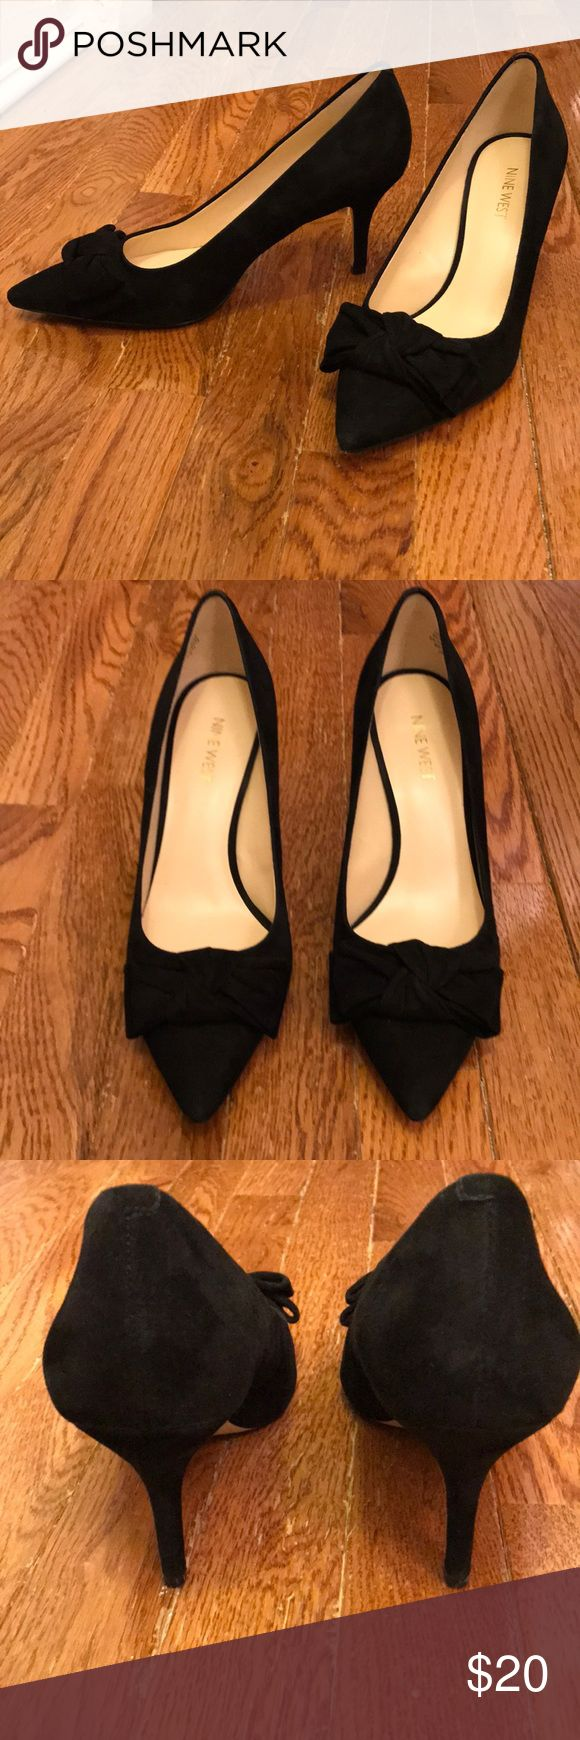 """Black suede bow heels from Nine West Beautiful black suede pumps with bow detailing. 3"""" heel with padded footbed. Great condition. Nine West Shoes Heels"""